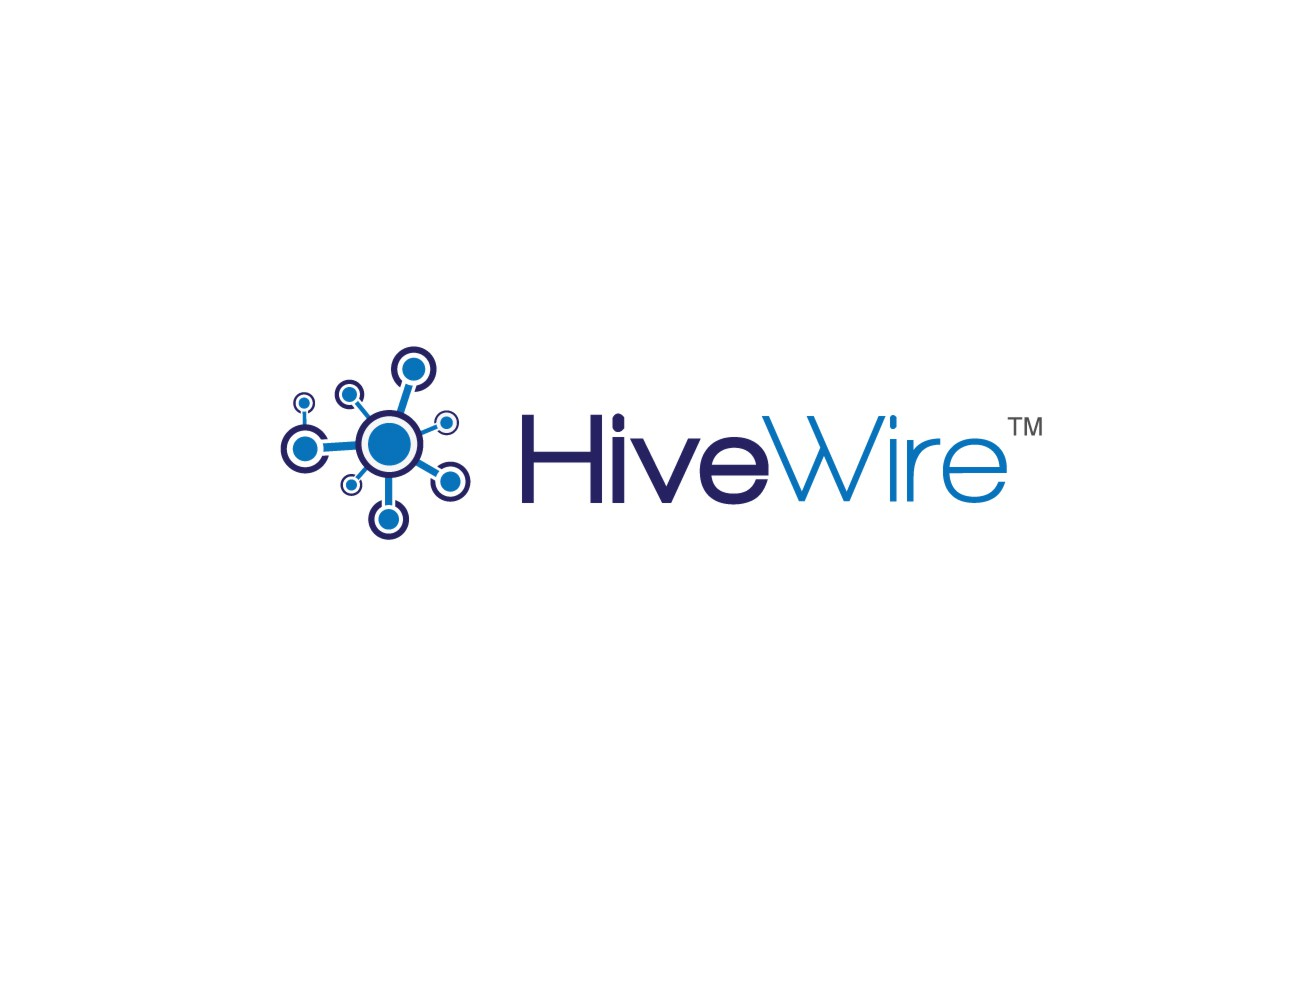 Create the next logo for HiveWire